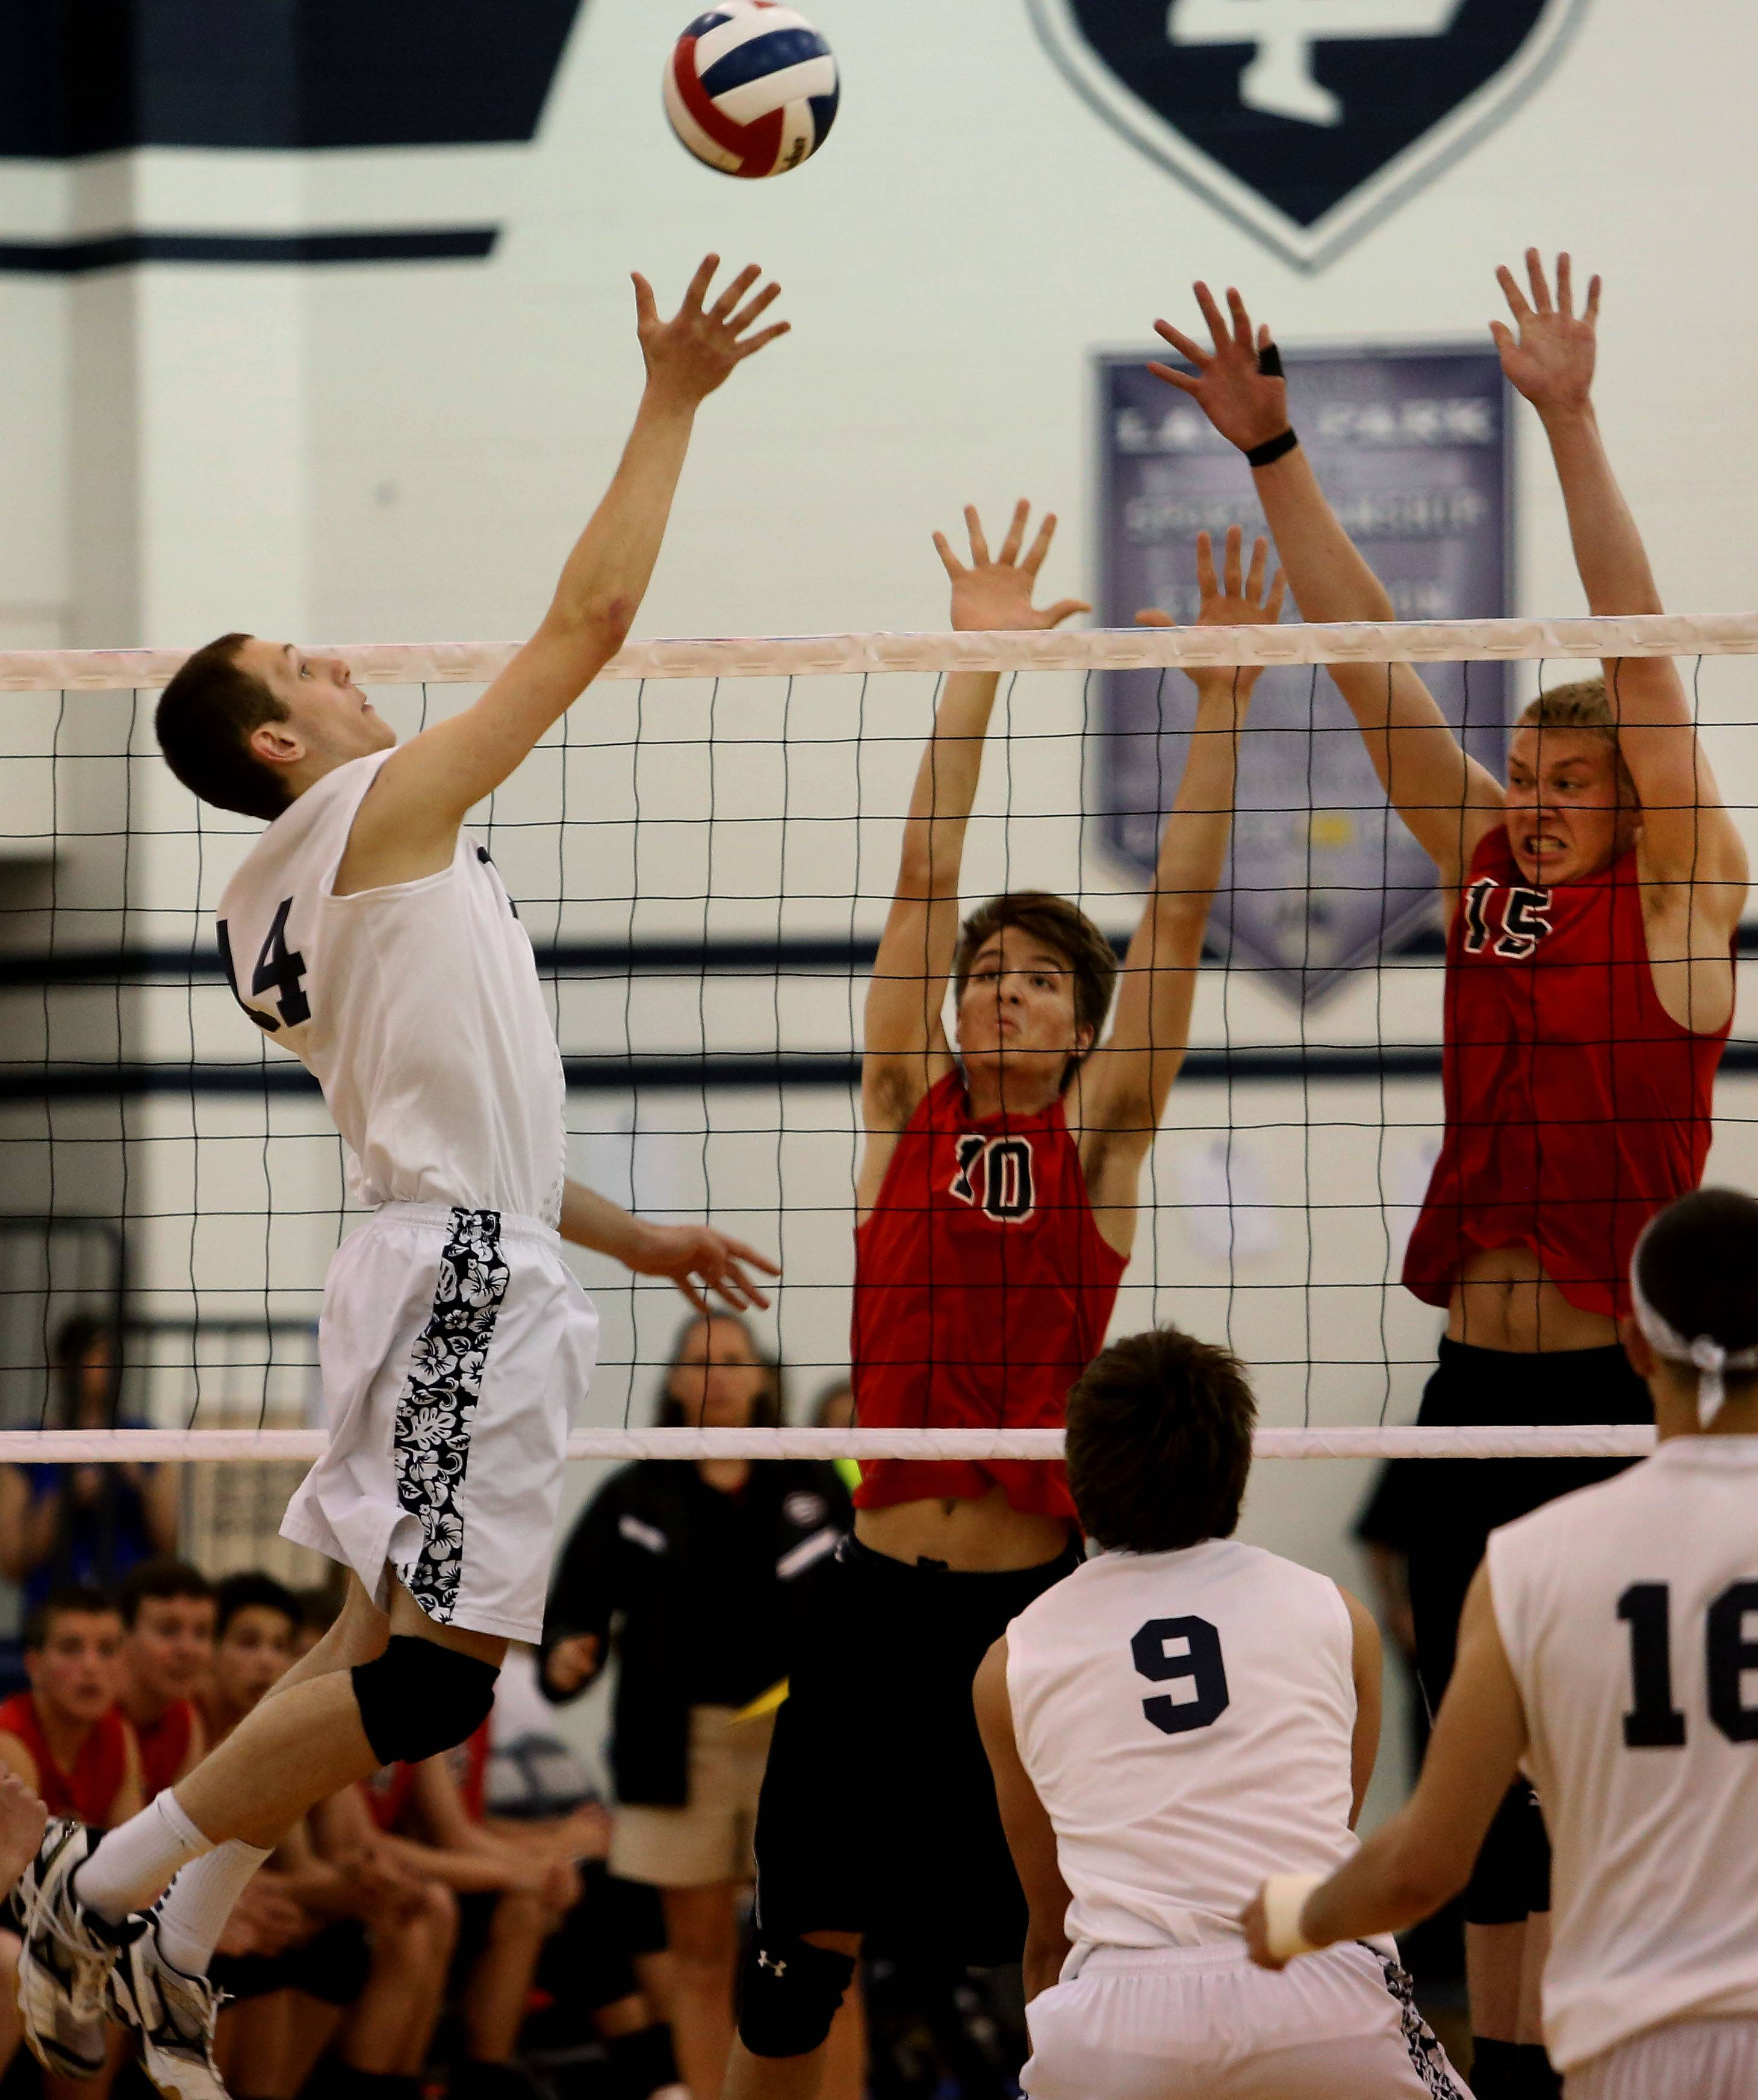 Jeff Yost, left, of Lake Park goes up for the ball as Jamie Wareham (10) and Erik Fiebrandt (15) of Glenbard East defend during boys volleyball action in Roselle on Tuesday.